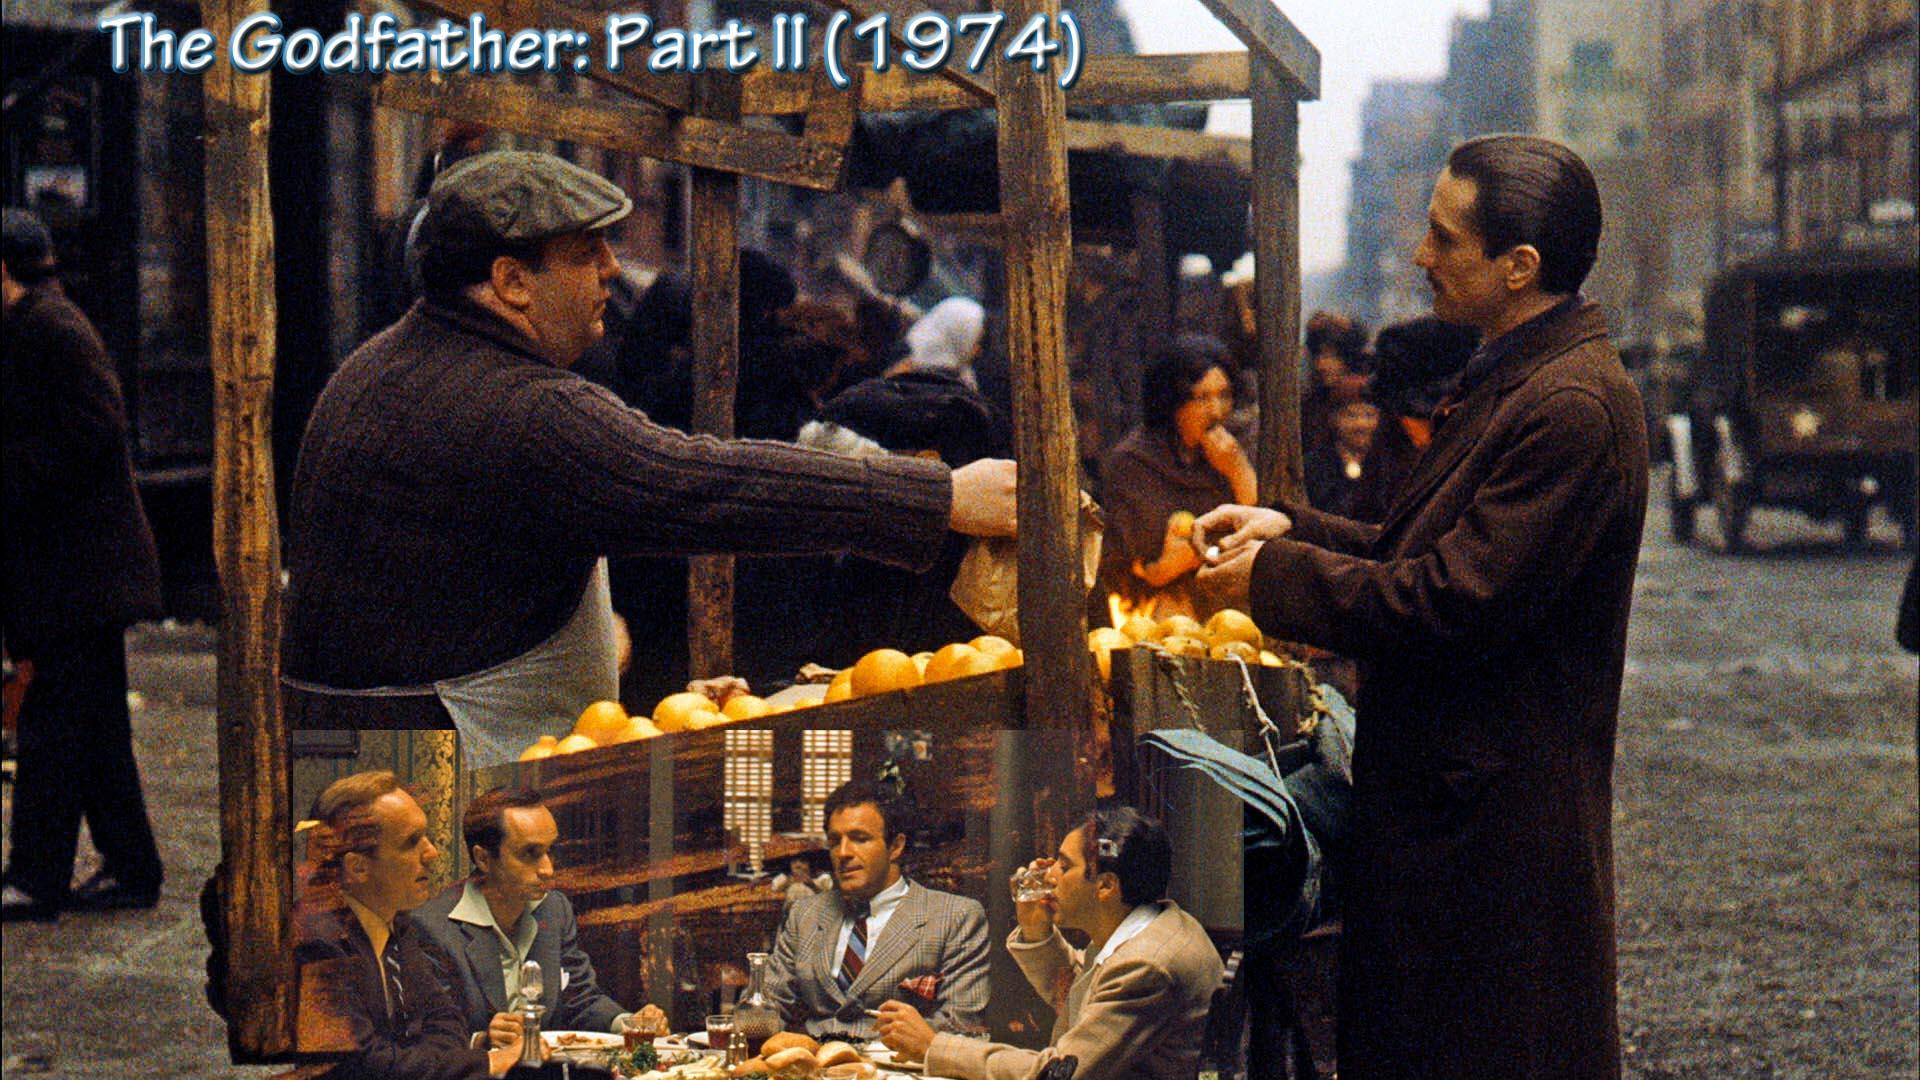 Classic Movies image The Godfather: Part II 1974 HD wallpapers and